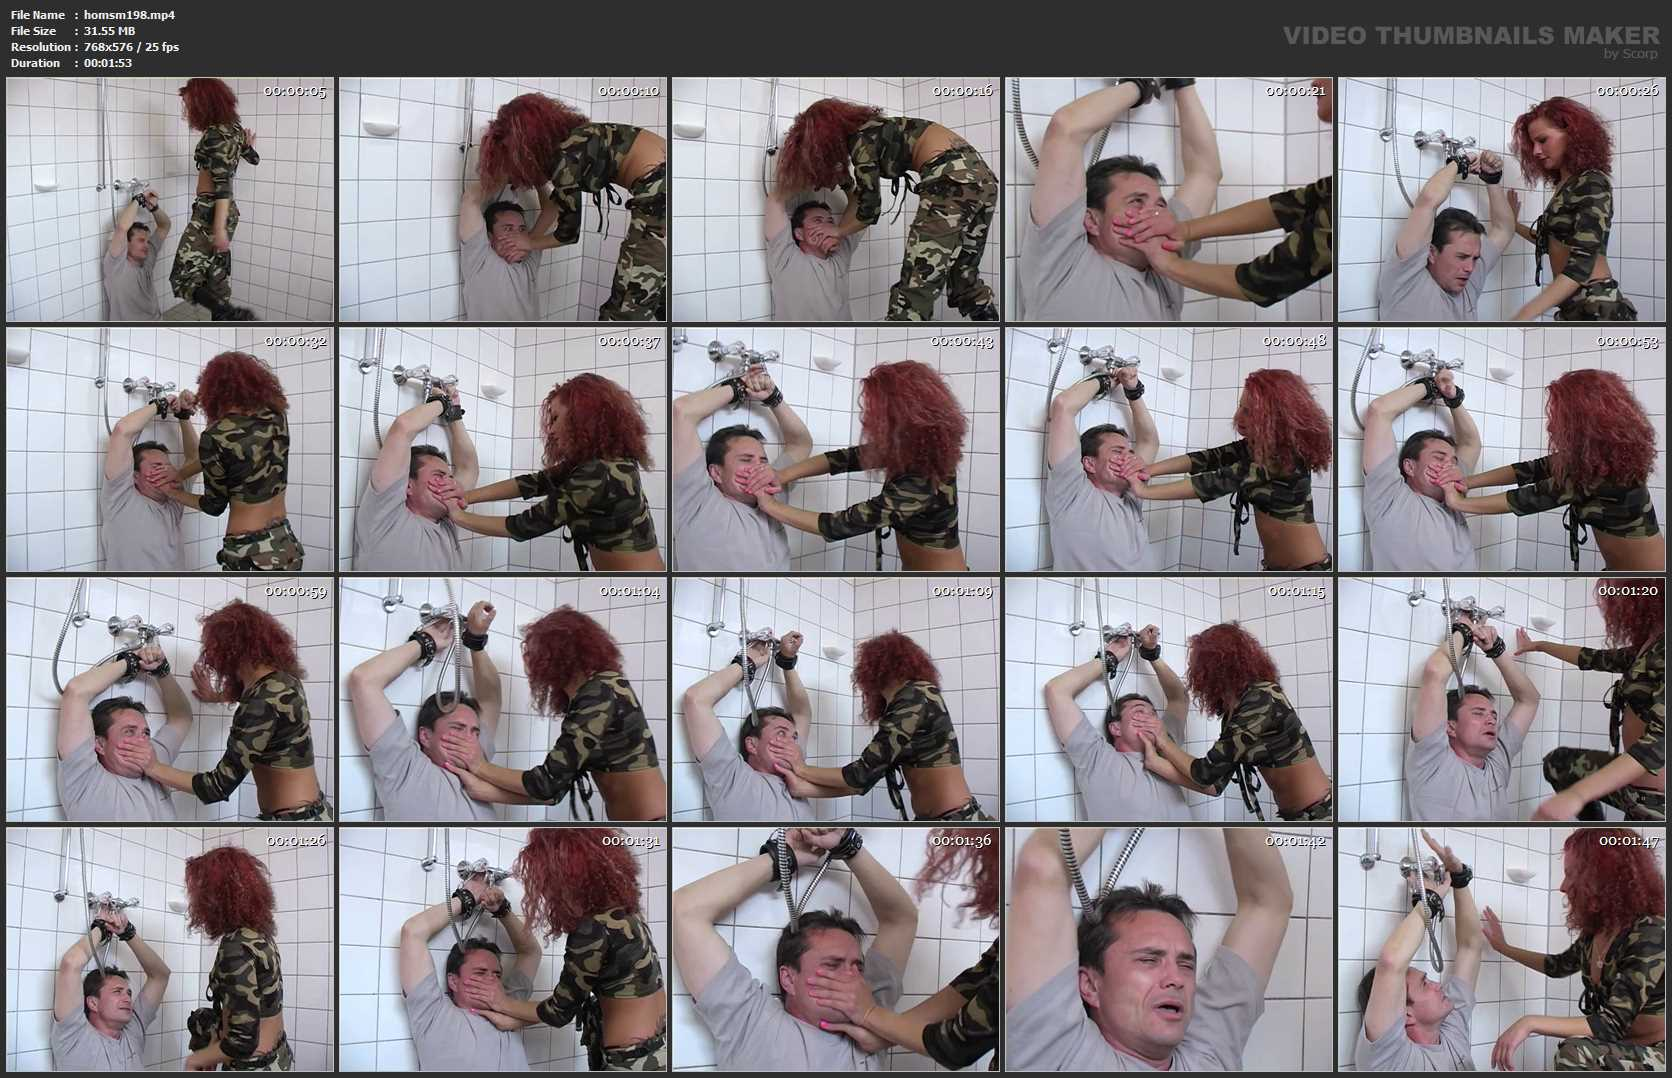 Kimberley In Scene: Punishment by homsmother - HOMSMOTHER - SD/576p/MP4